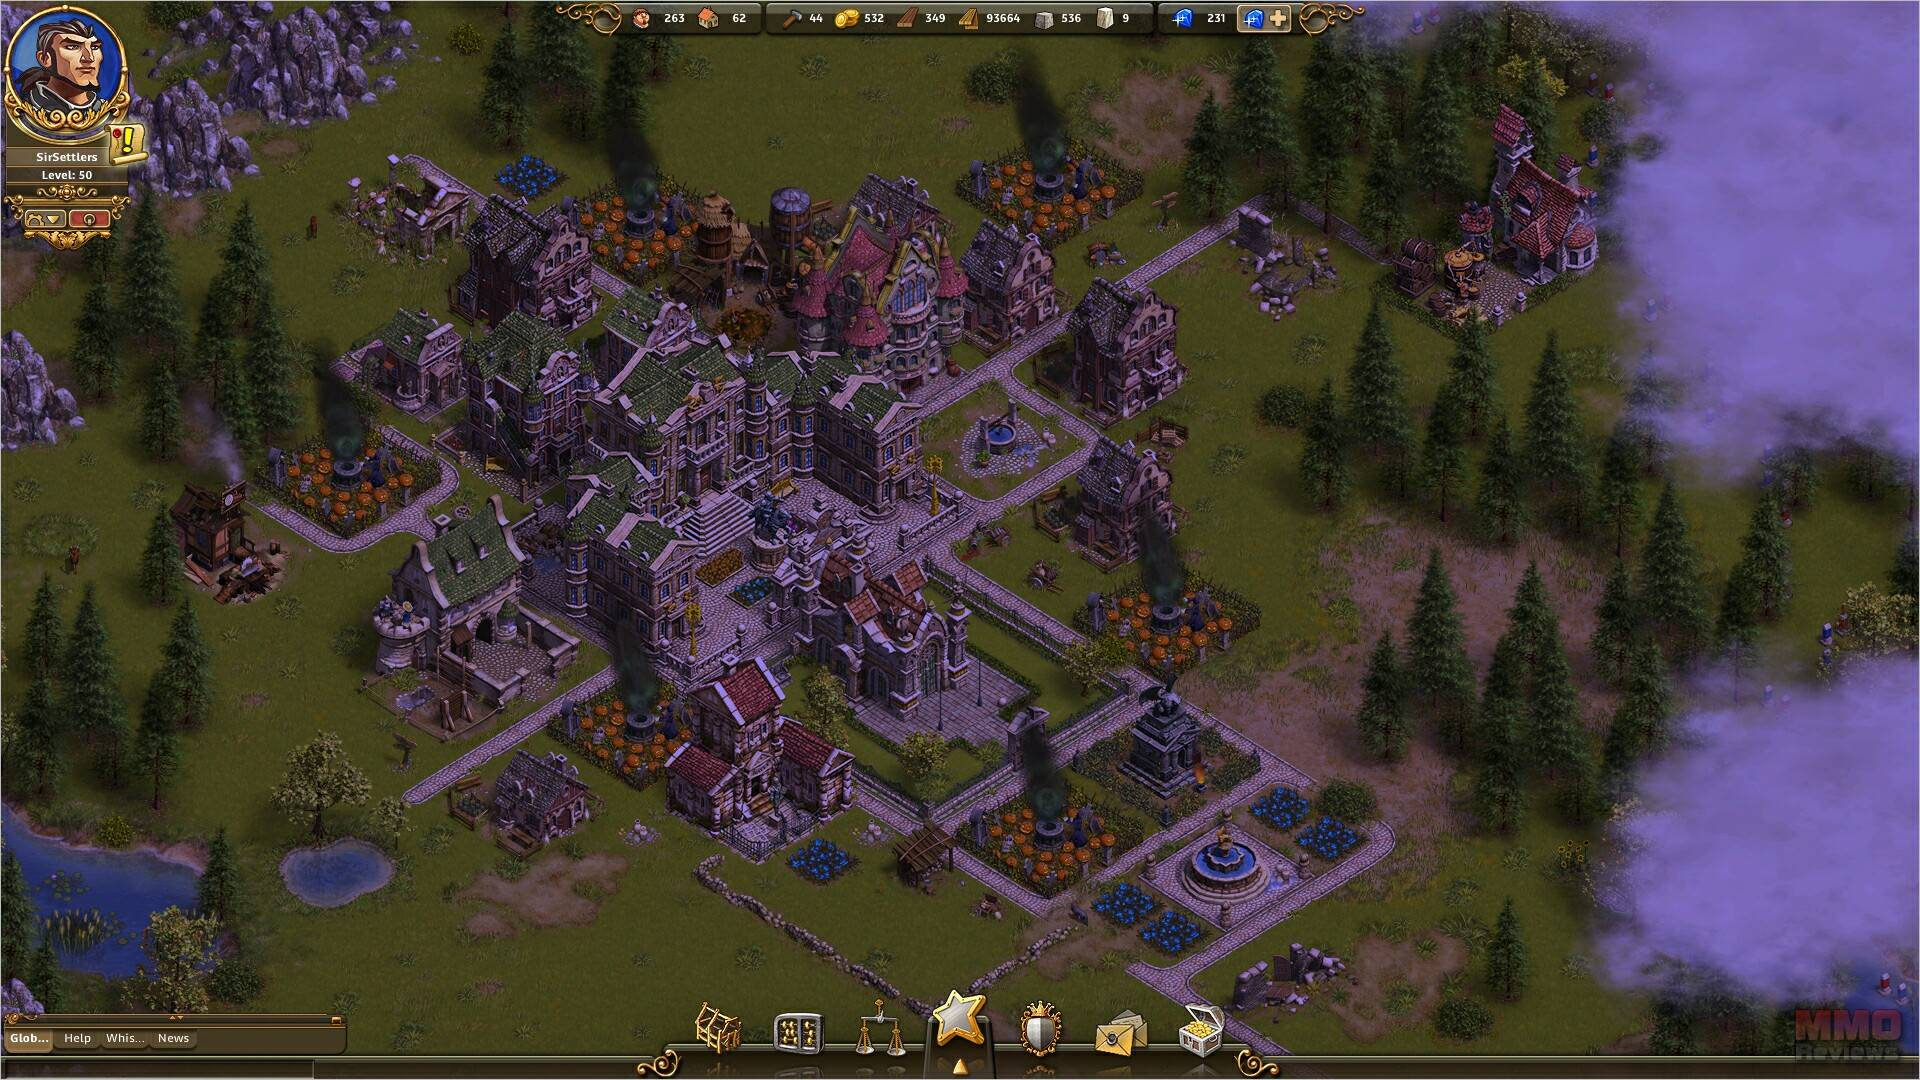 The Settlers Online: Castle Empire celebrates Halloween